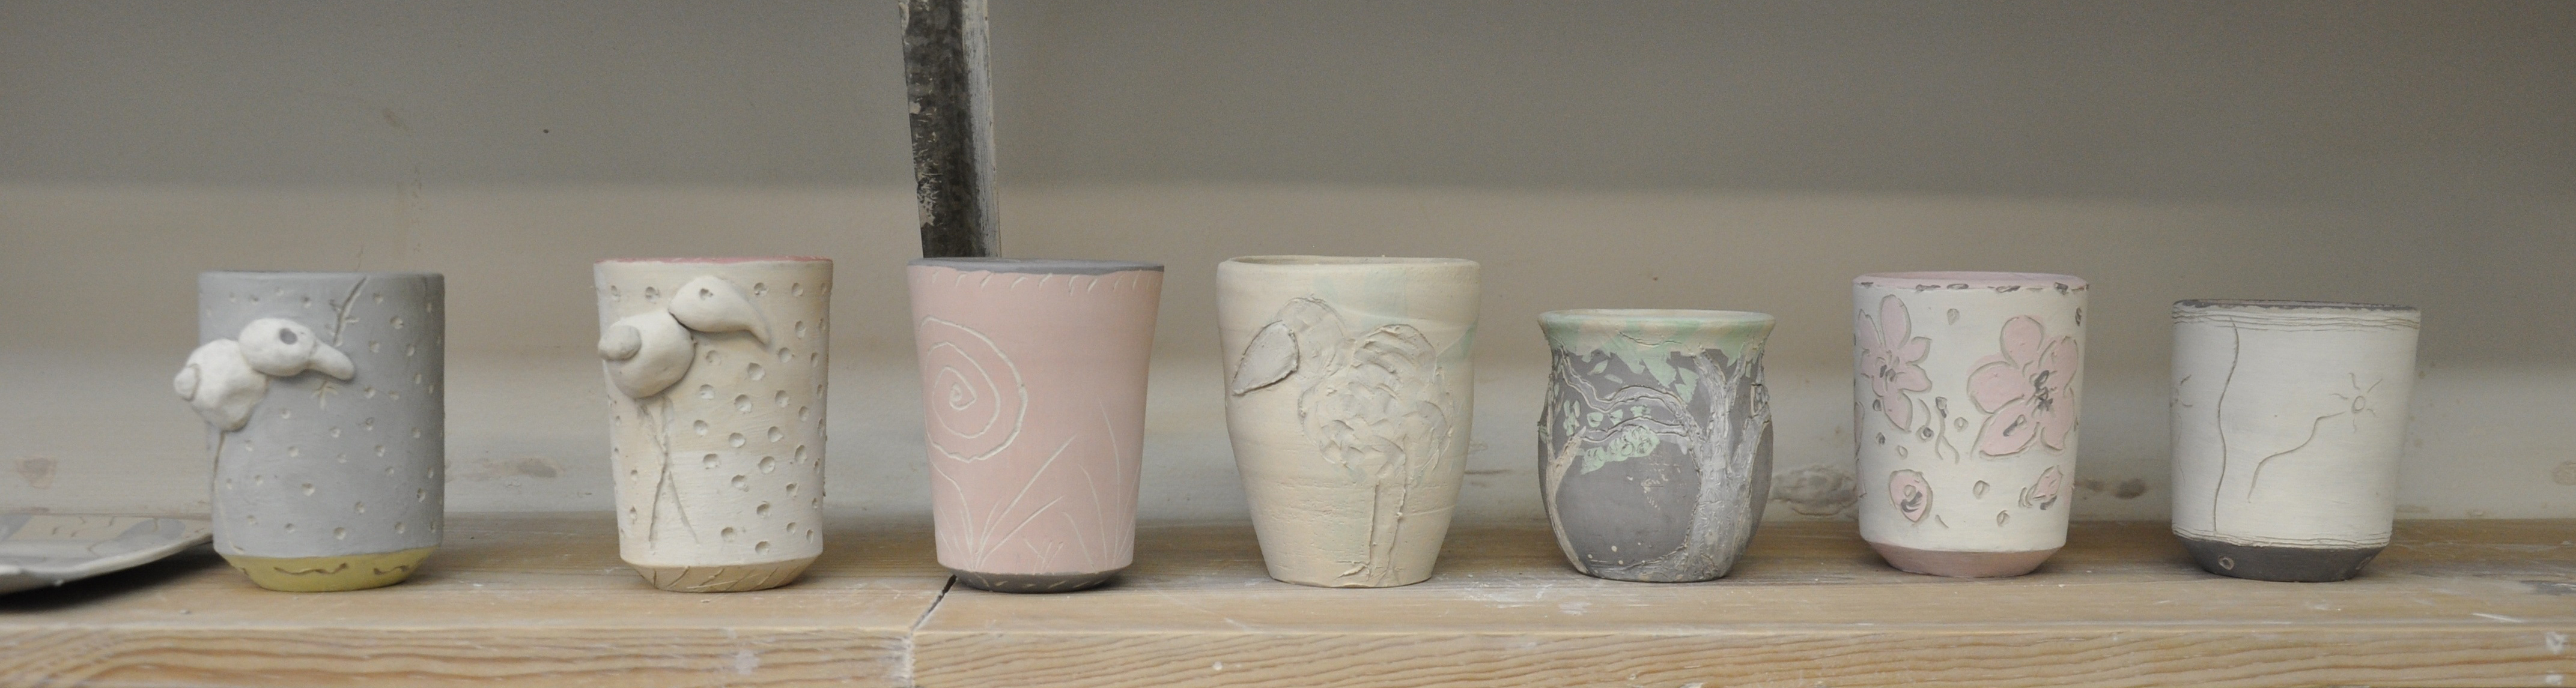 Earth and Fire Pottery Classes and Gallery New Orleans Louisiana